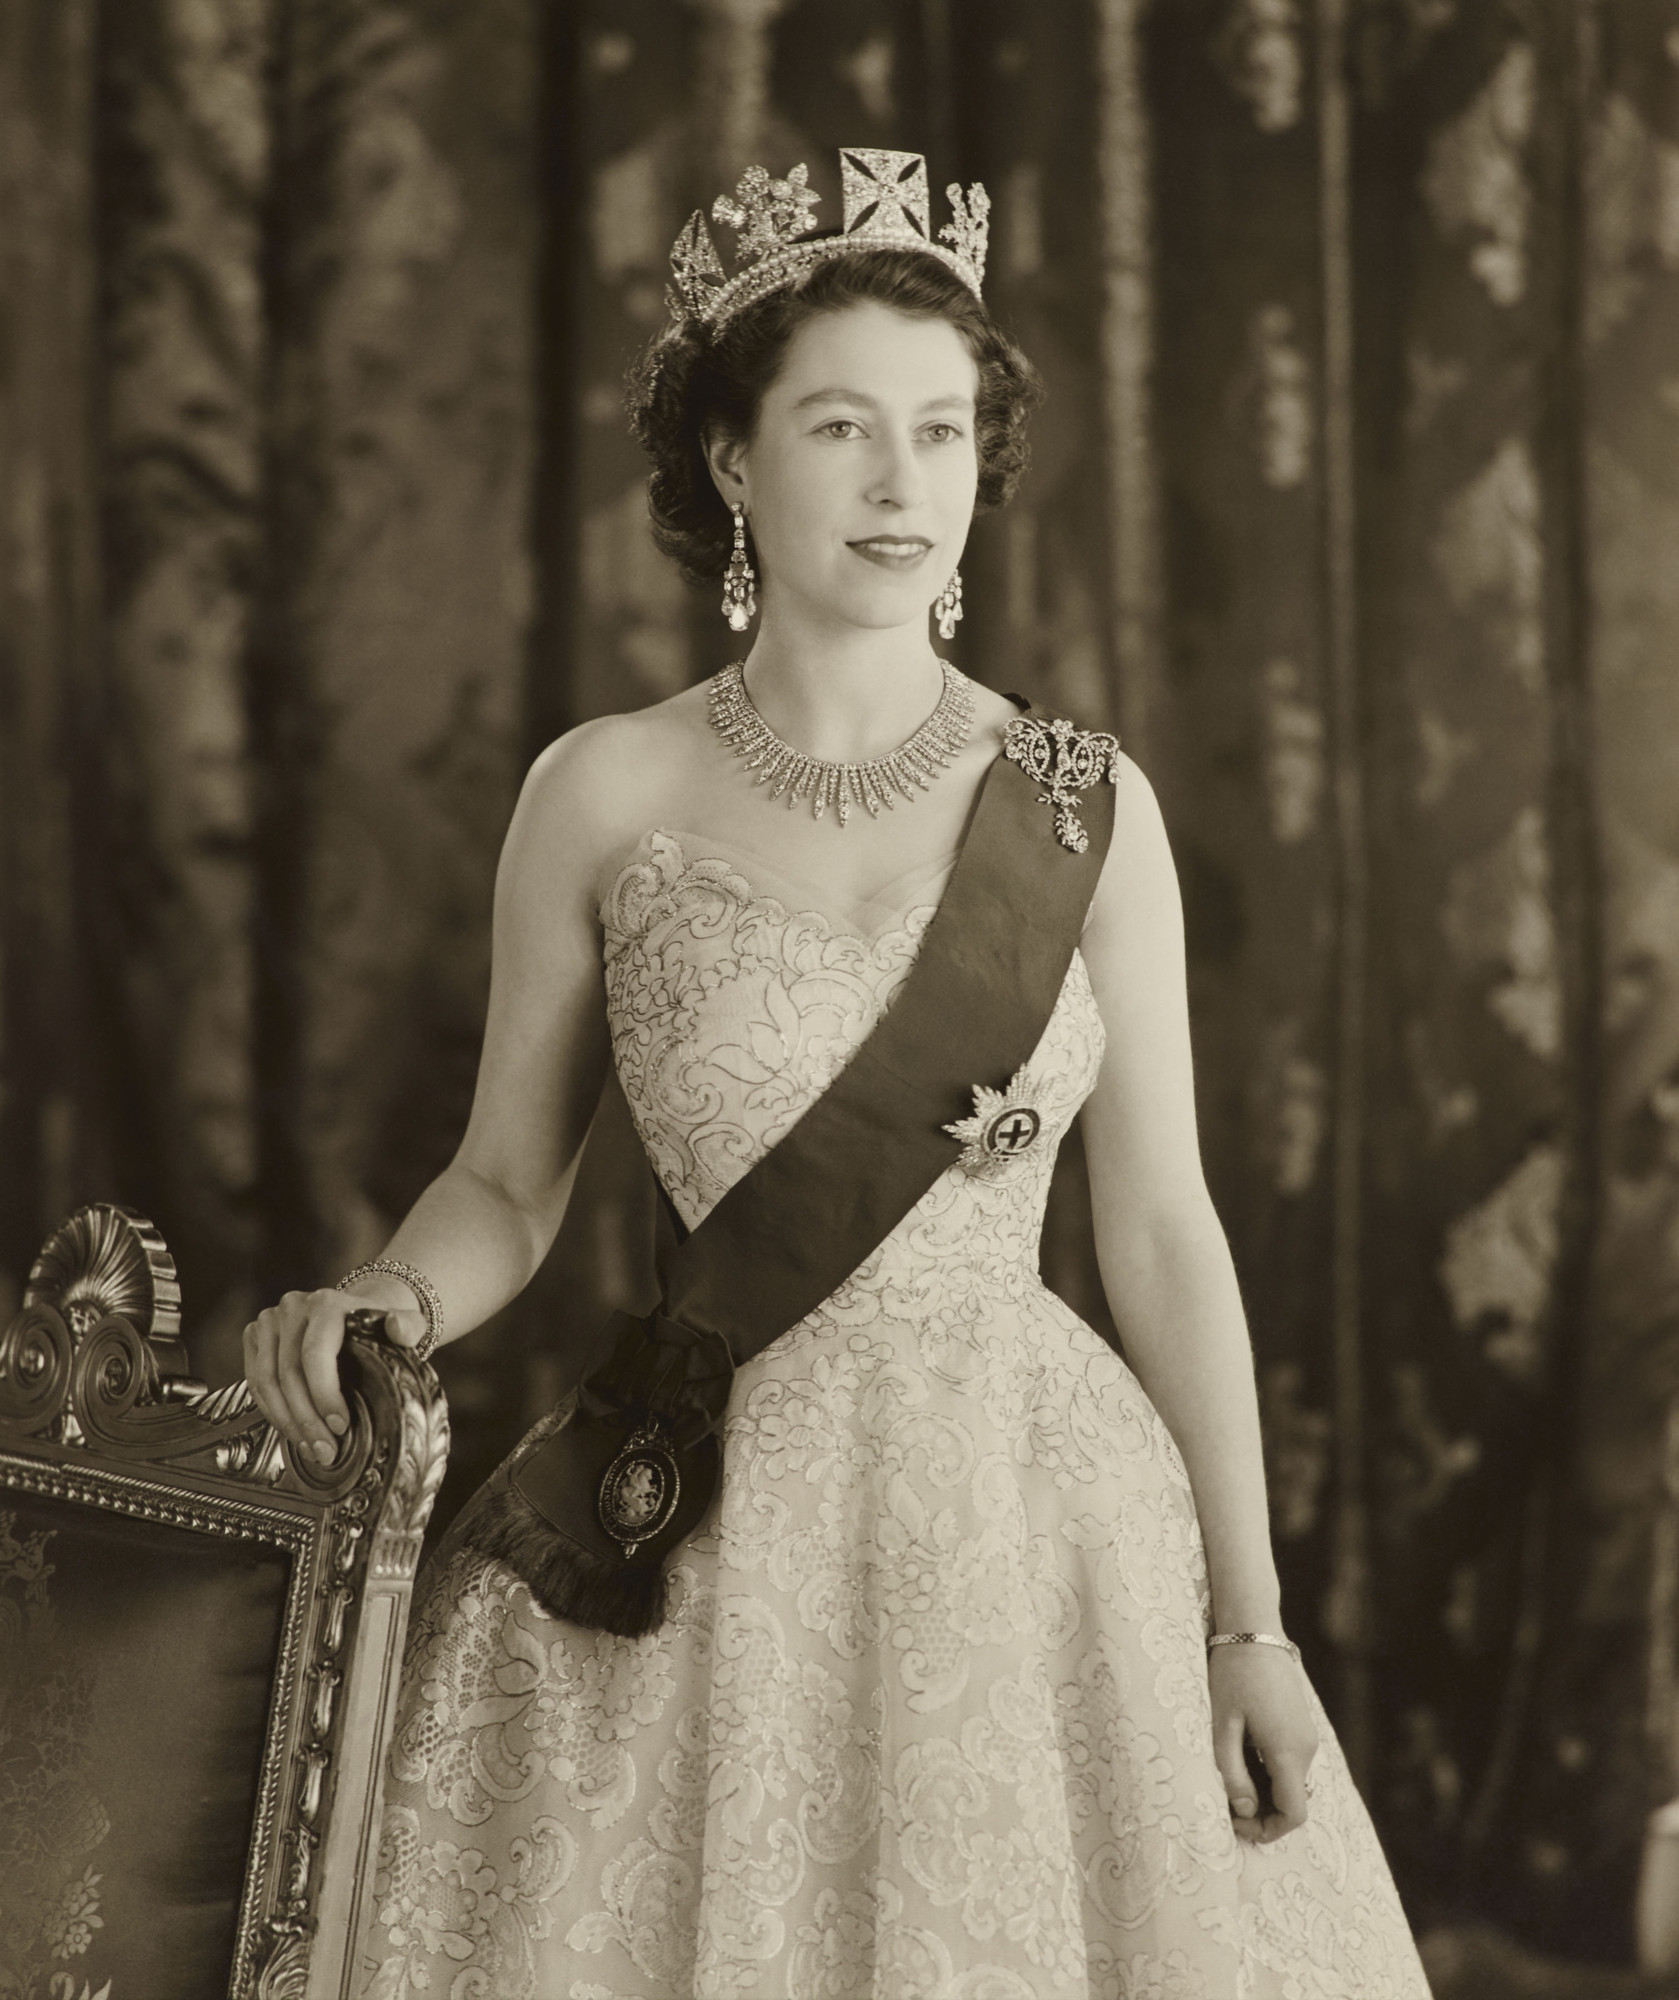 HM Queen Elizabeth II of the United Kingdom during her